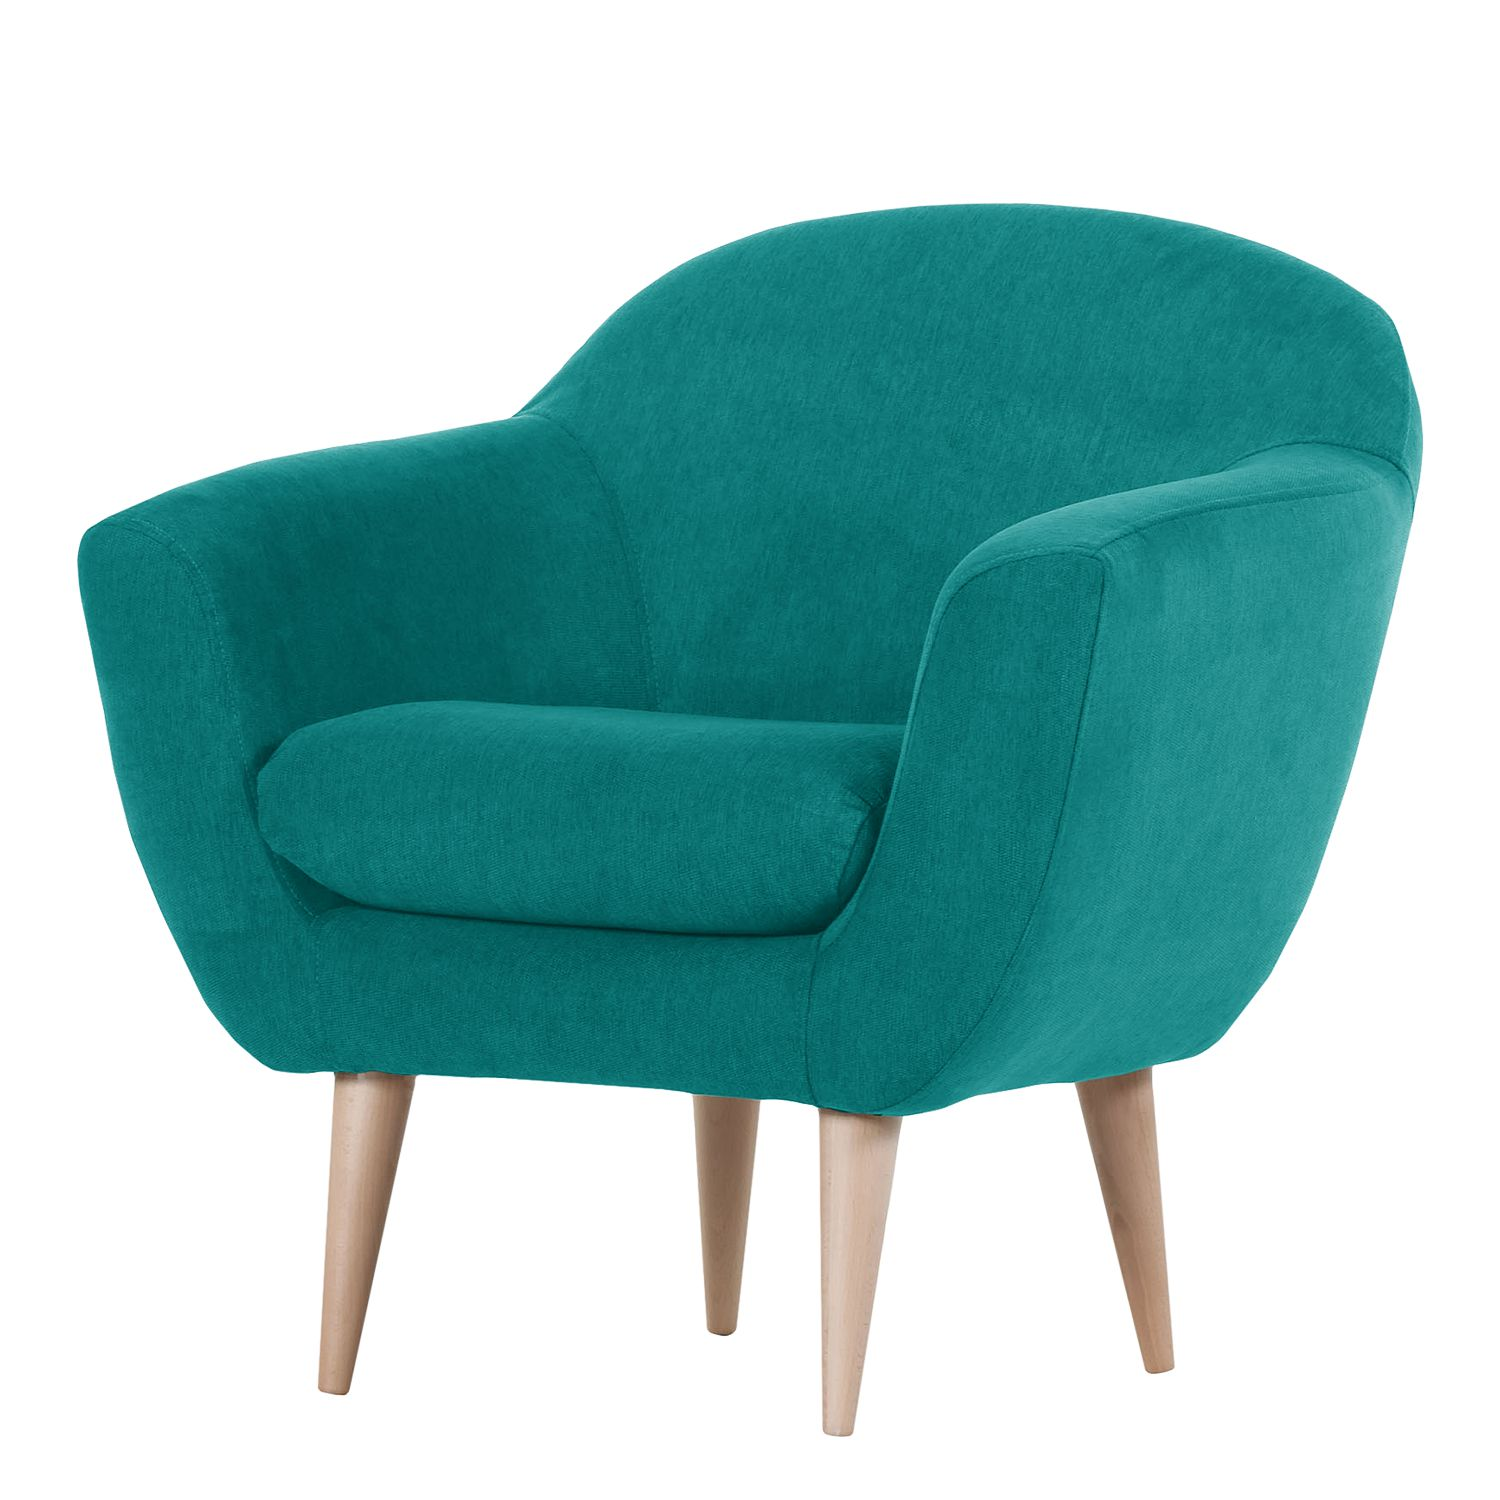 Fauteuil Channay Tissu - Turquoise, Morteens